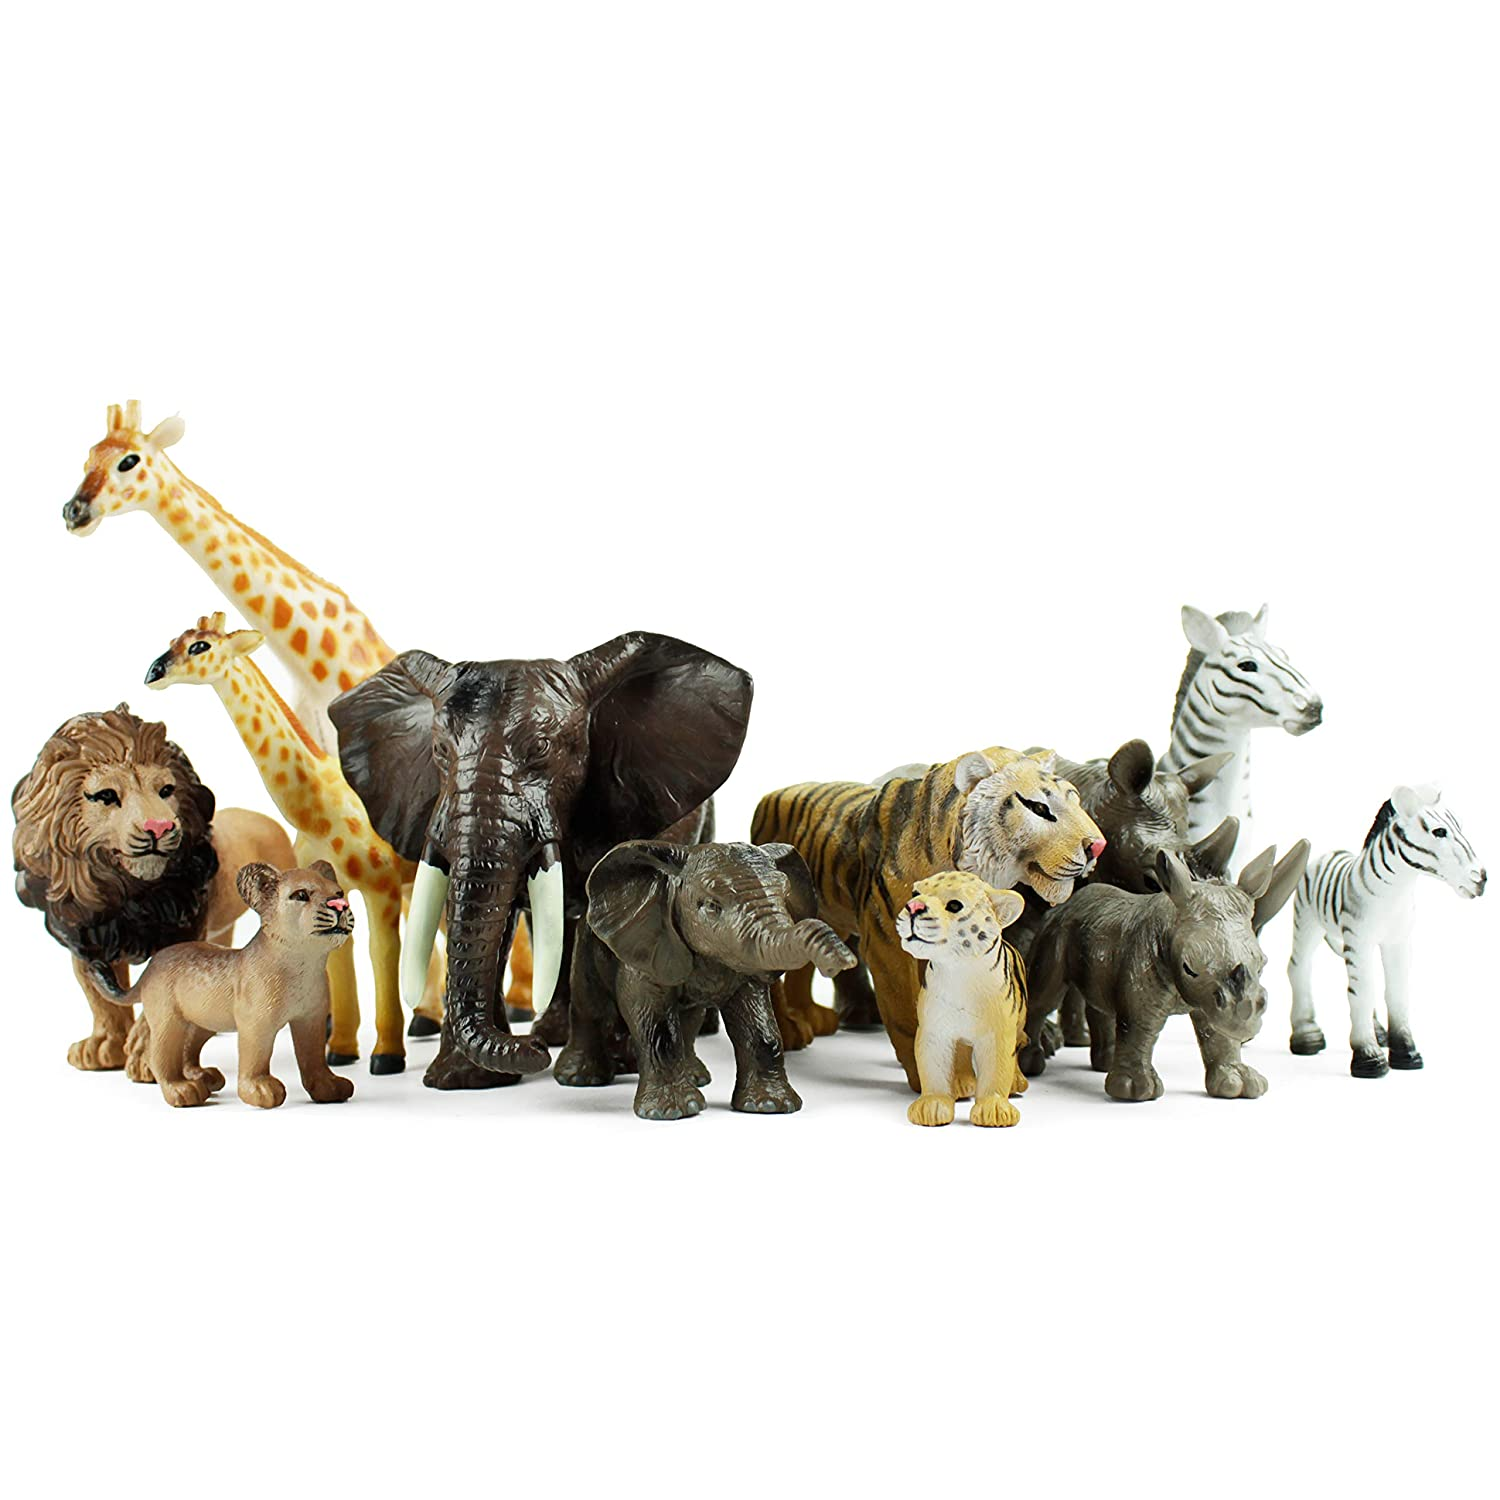 Boley 12 Piece Safari Animal Set - with Different Varieties of Zoo Animal Toys, Jungle Animal Toys, African Animal Toys and Baby Animals - Great Educational Toy and Child Development Toy